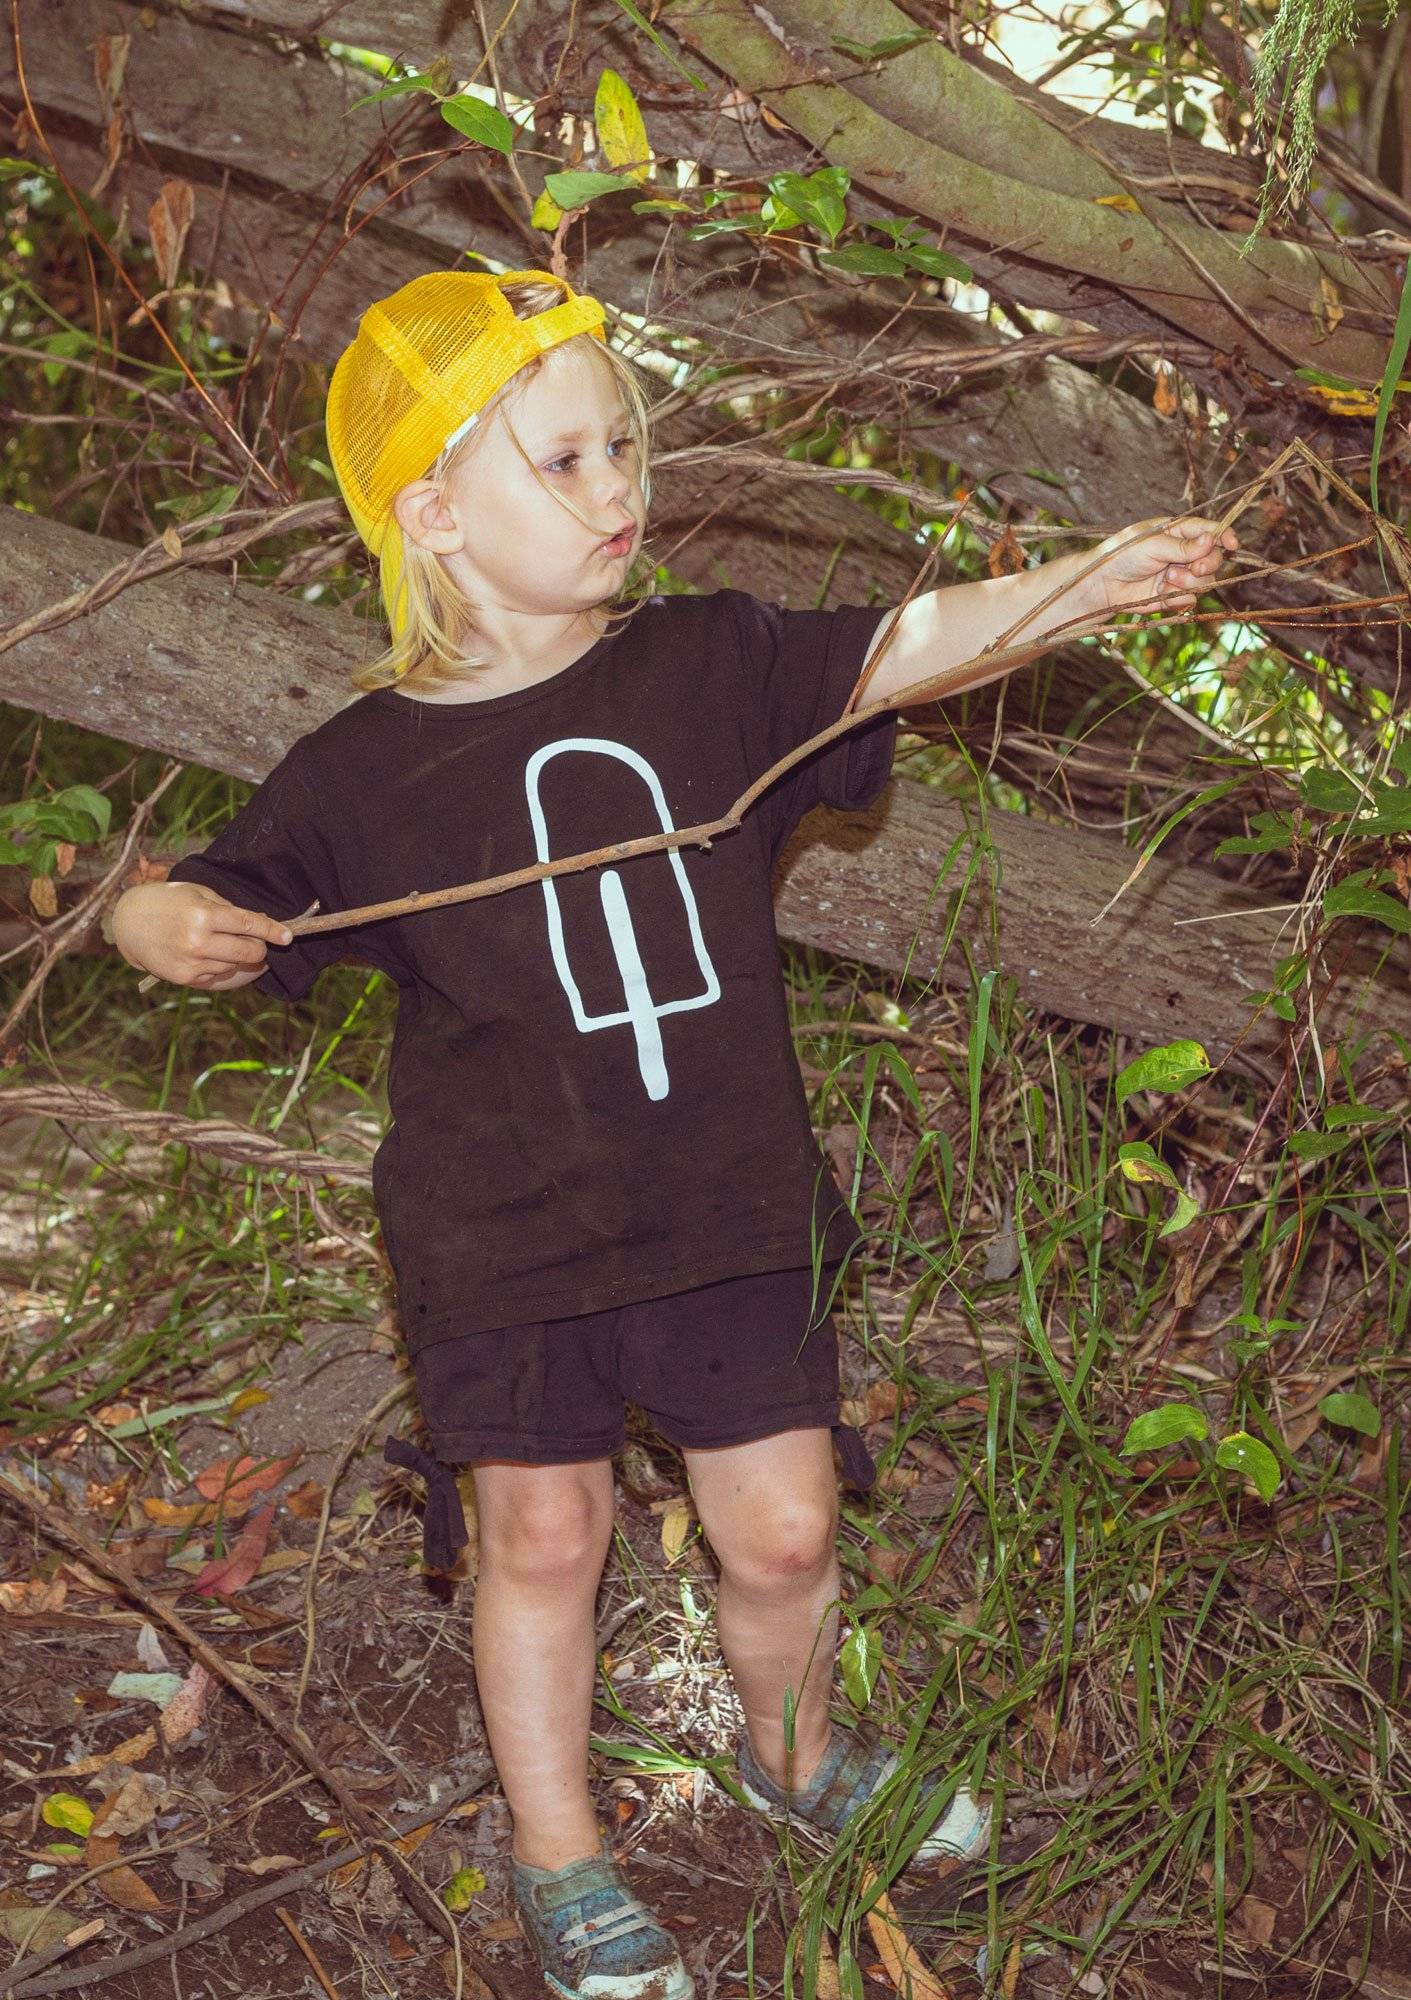 Young boy with a yellow cap and black shirt with popsicle design